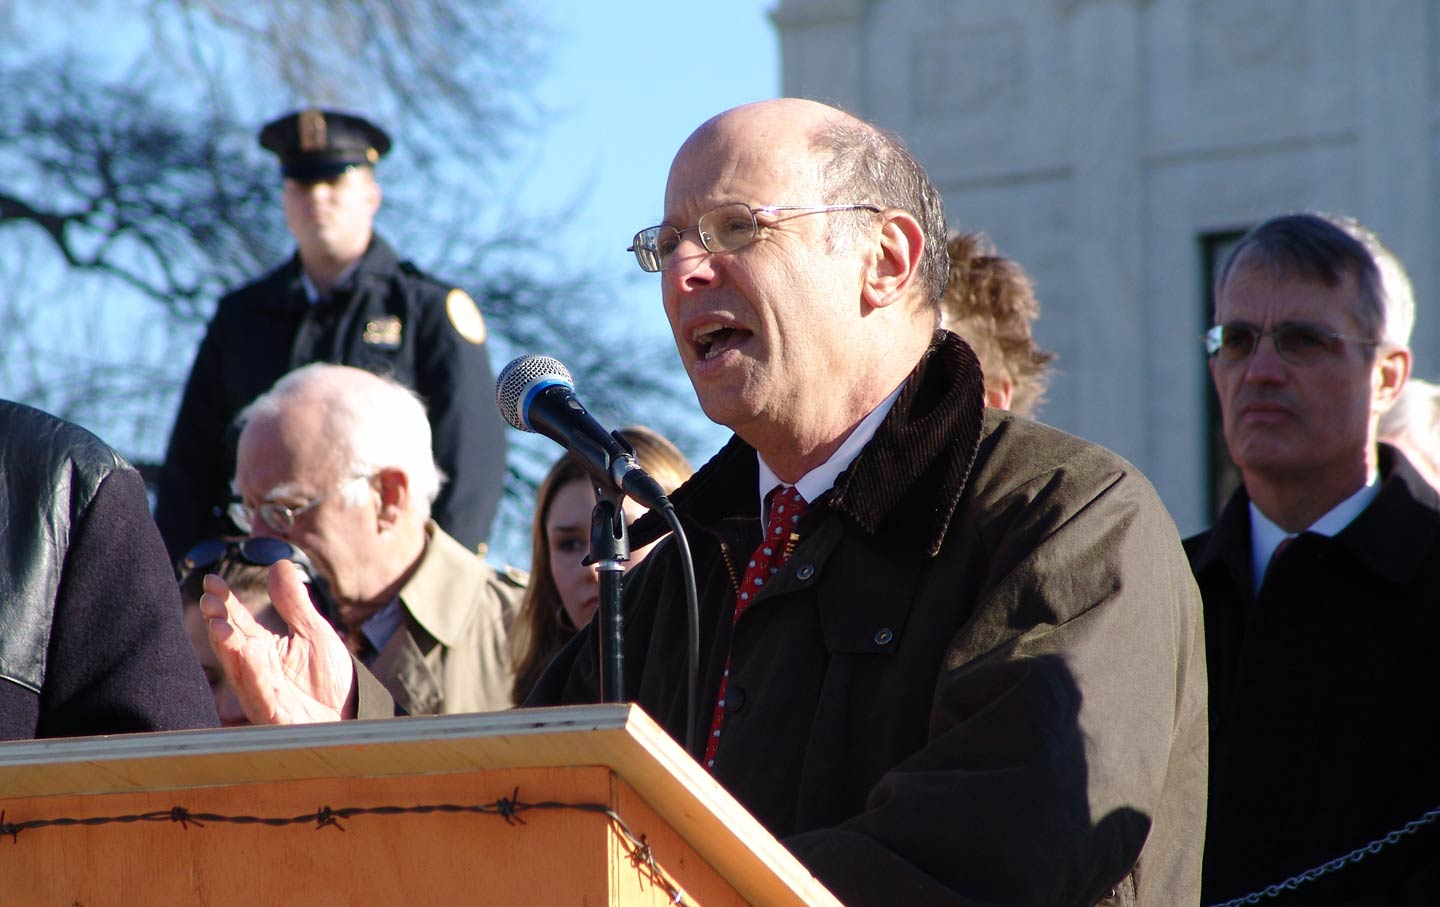 Michael Ratner in front of the Supreme Court